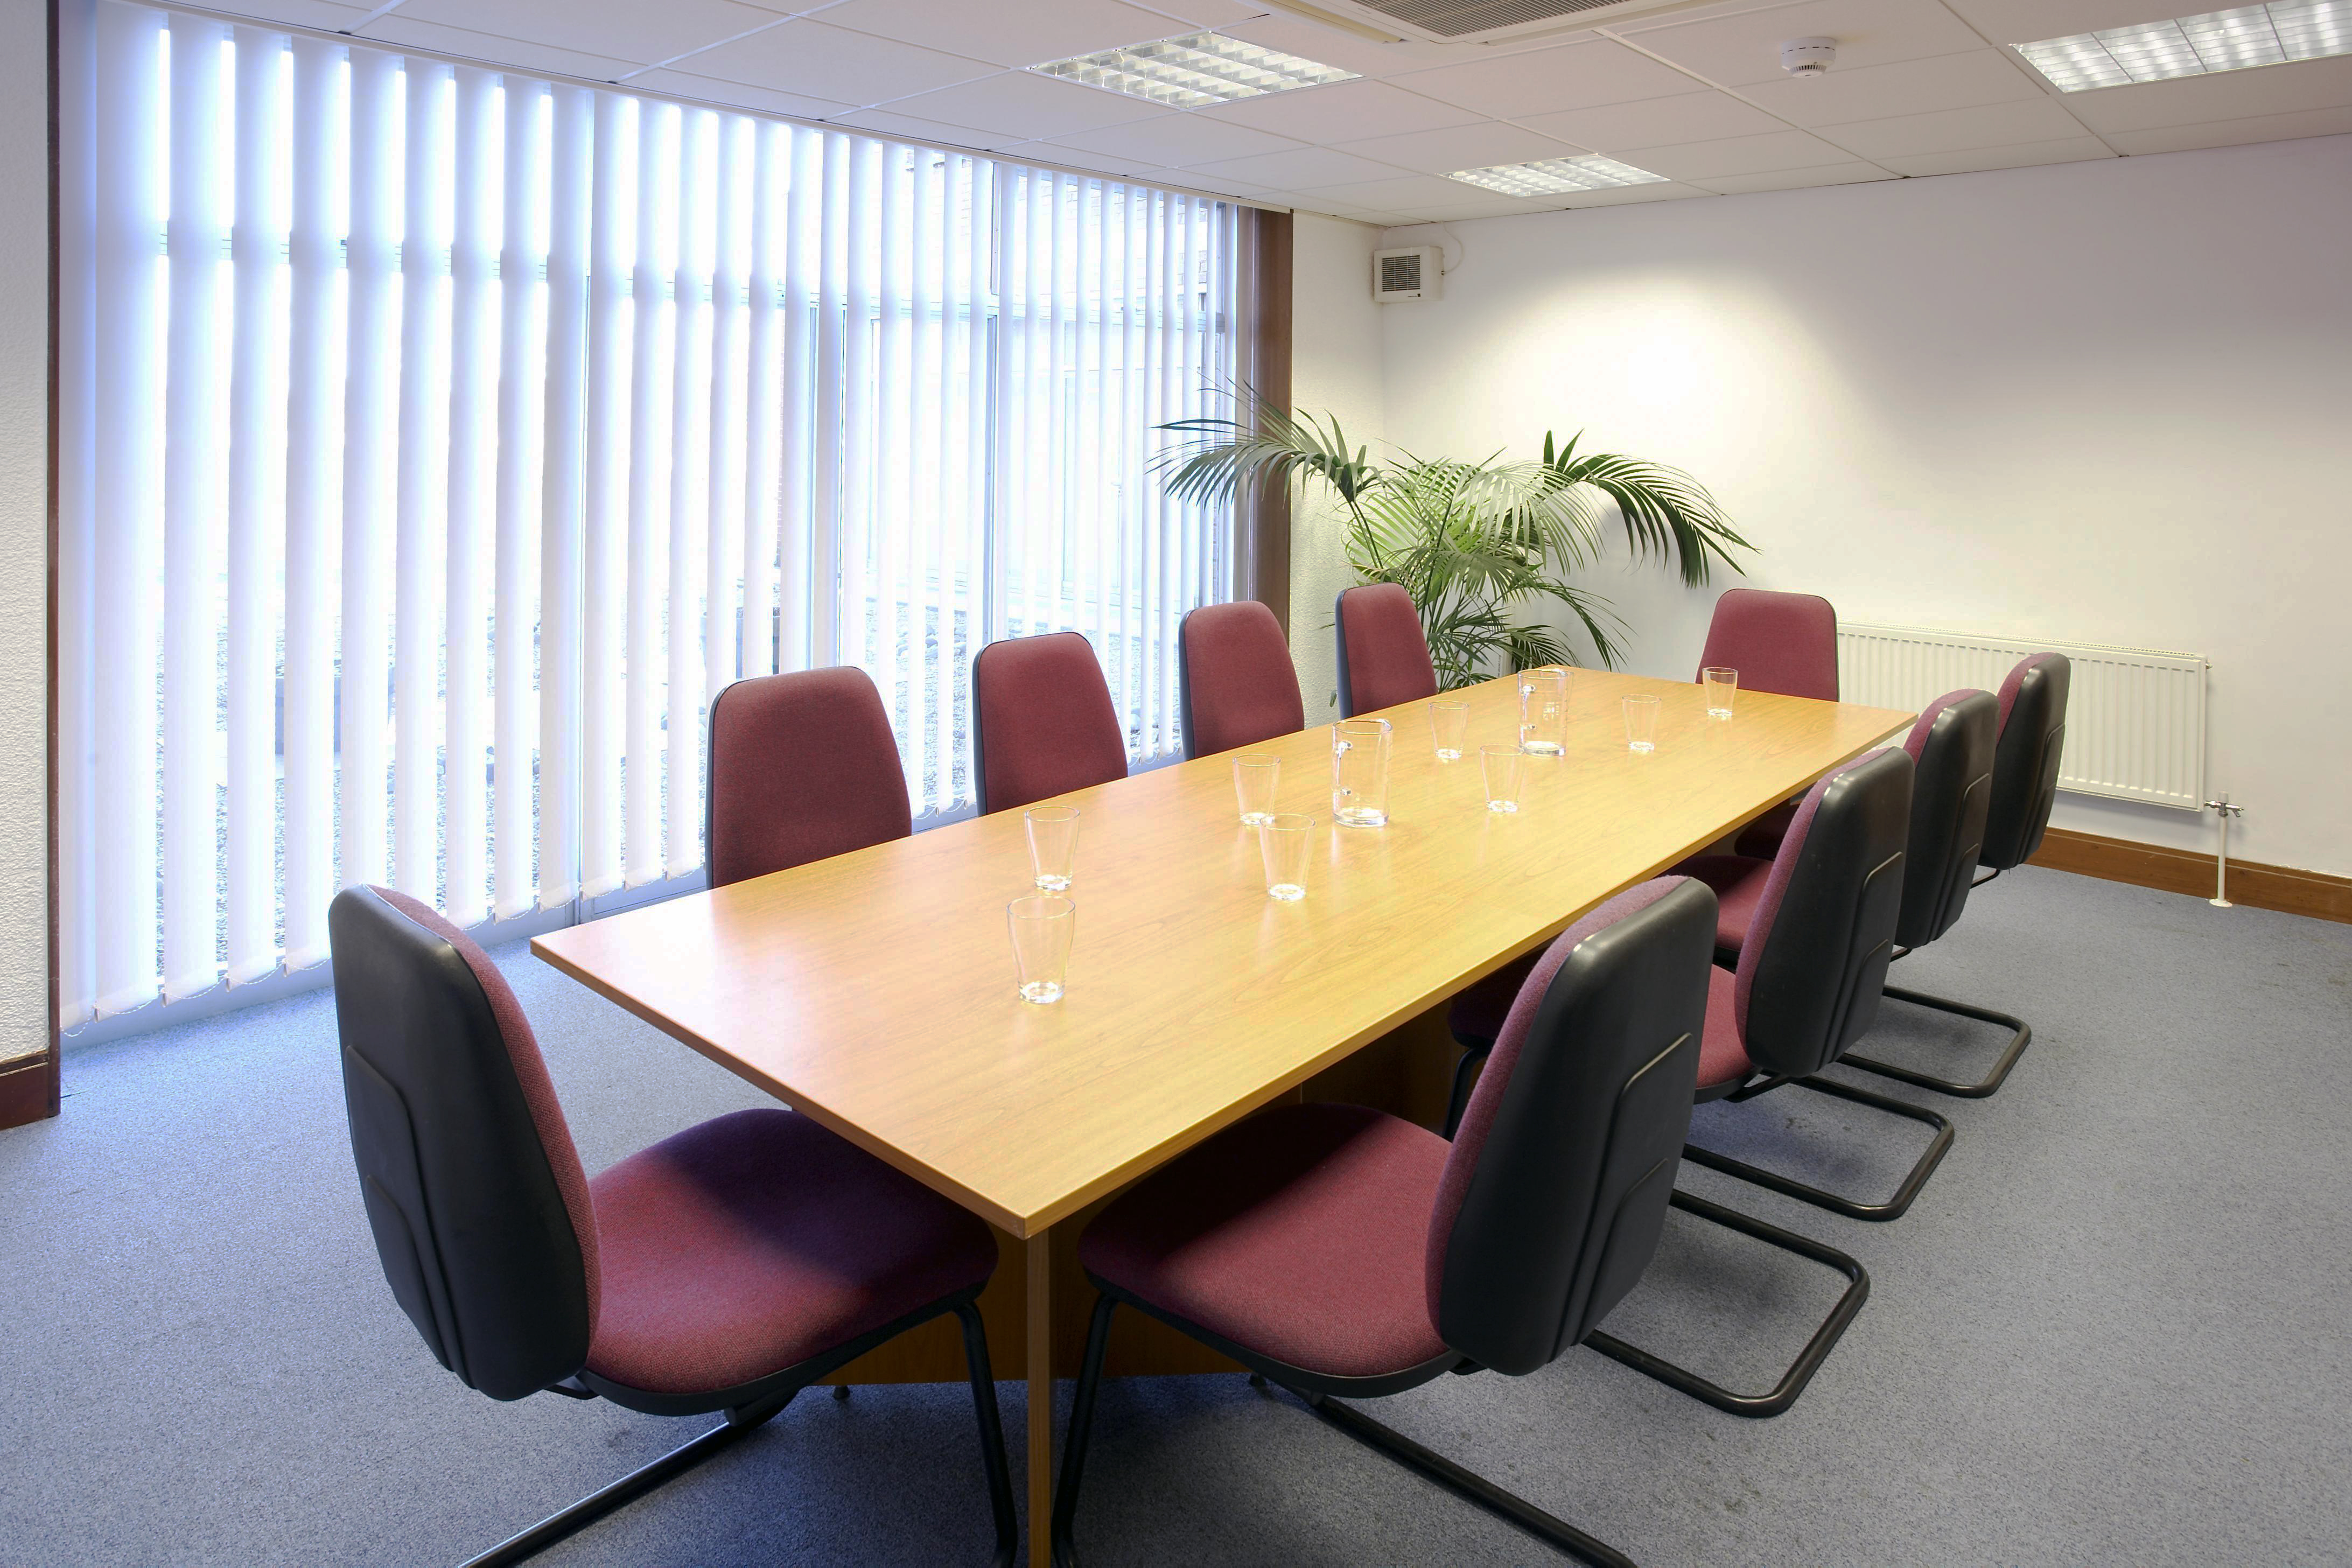 Meeting Room, Bizspace, The Business Centre, Hooton, Cheshire, CH66